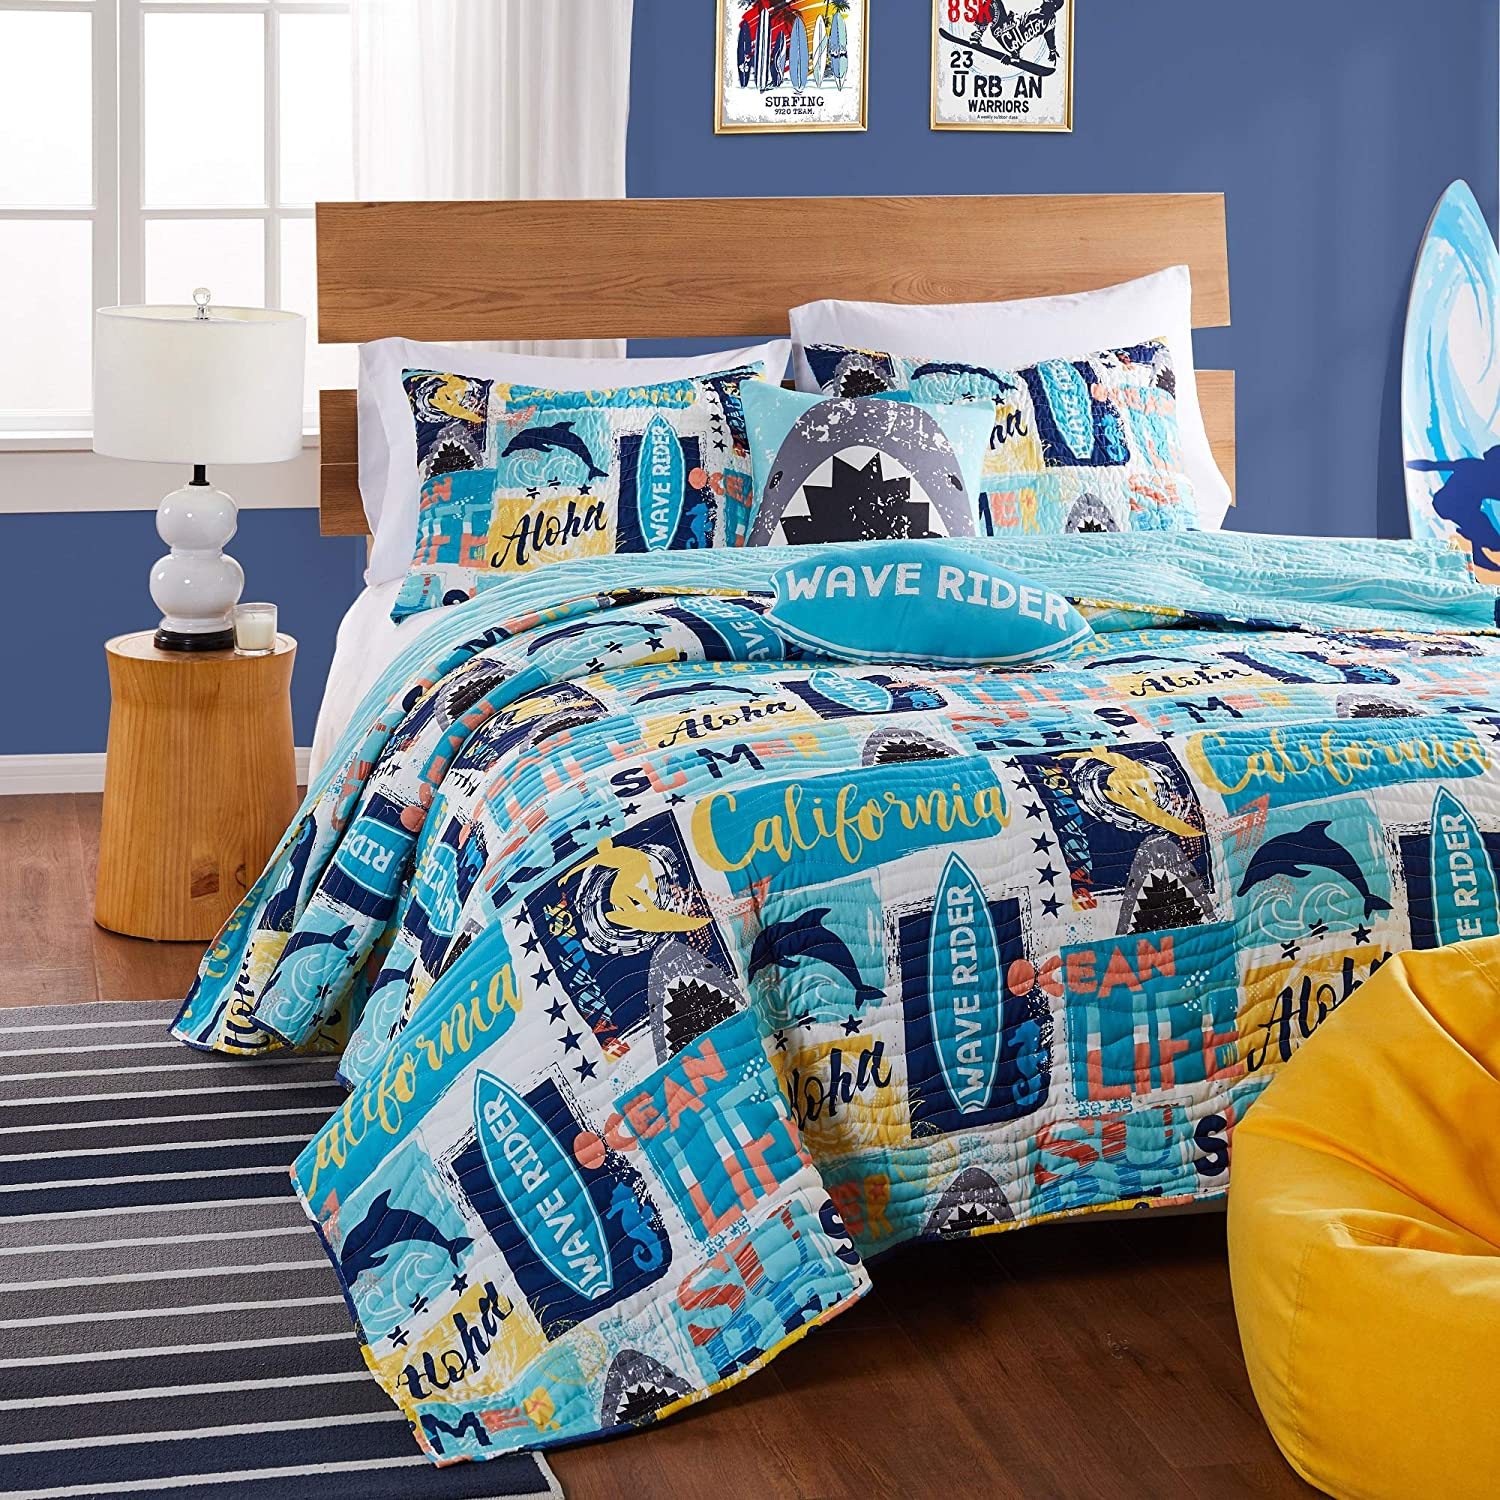 Greenland Finally resale start Home security Fashions Wave Rider Quilt Bl Pillow Sham and Set